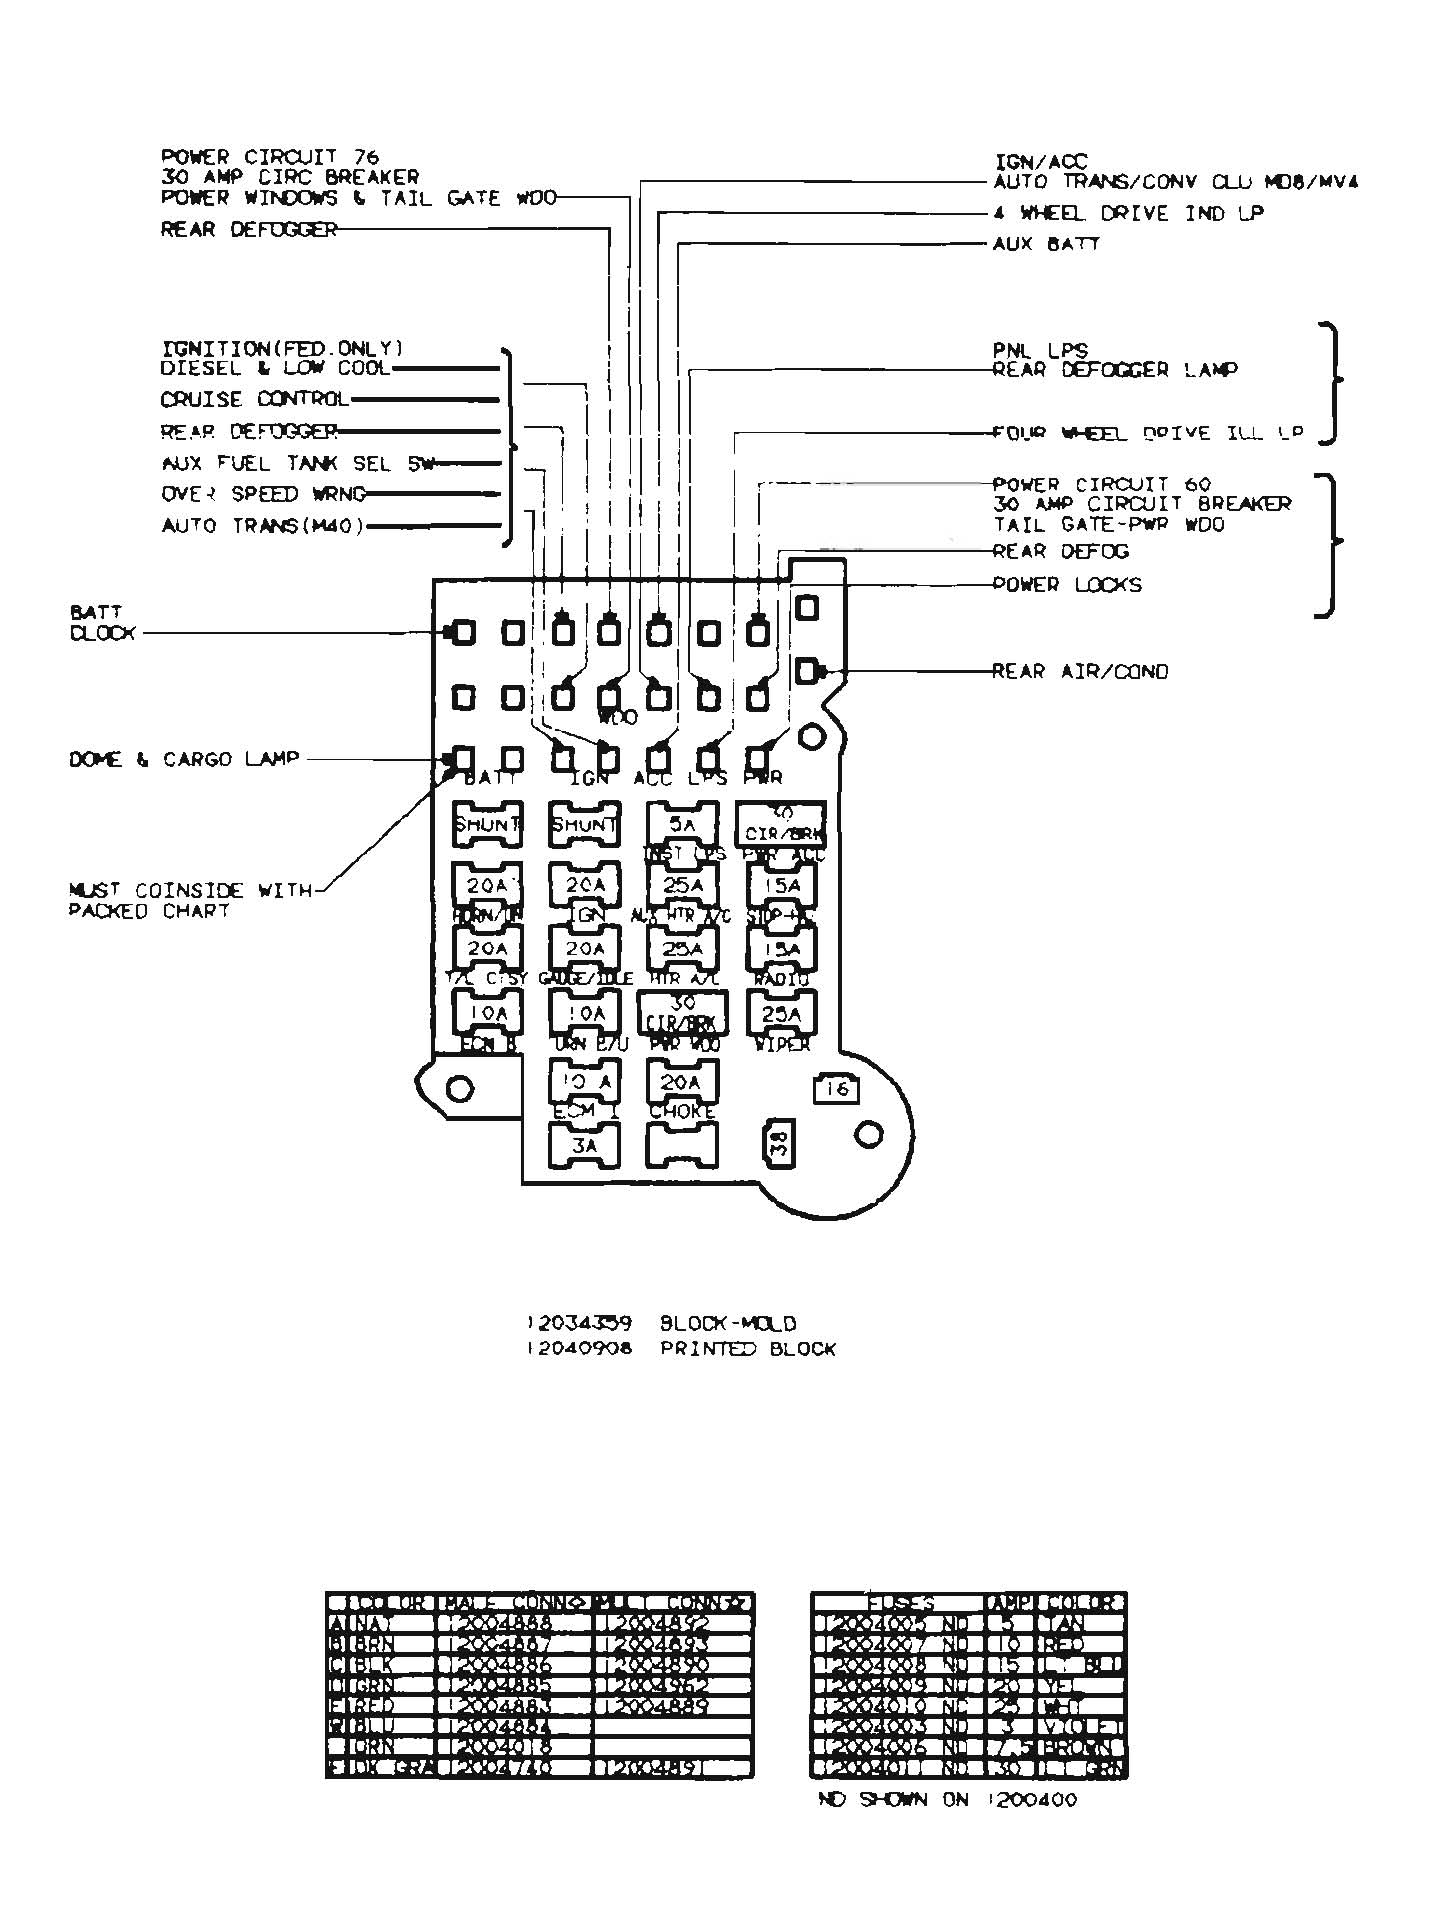 1983 Chevy C10 Fuse Box Diagram - Wiring Diagram Data - 1982 Chevy Truck Wiring Diagram